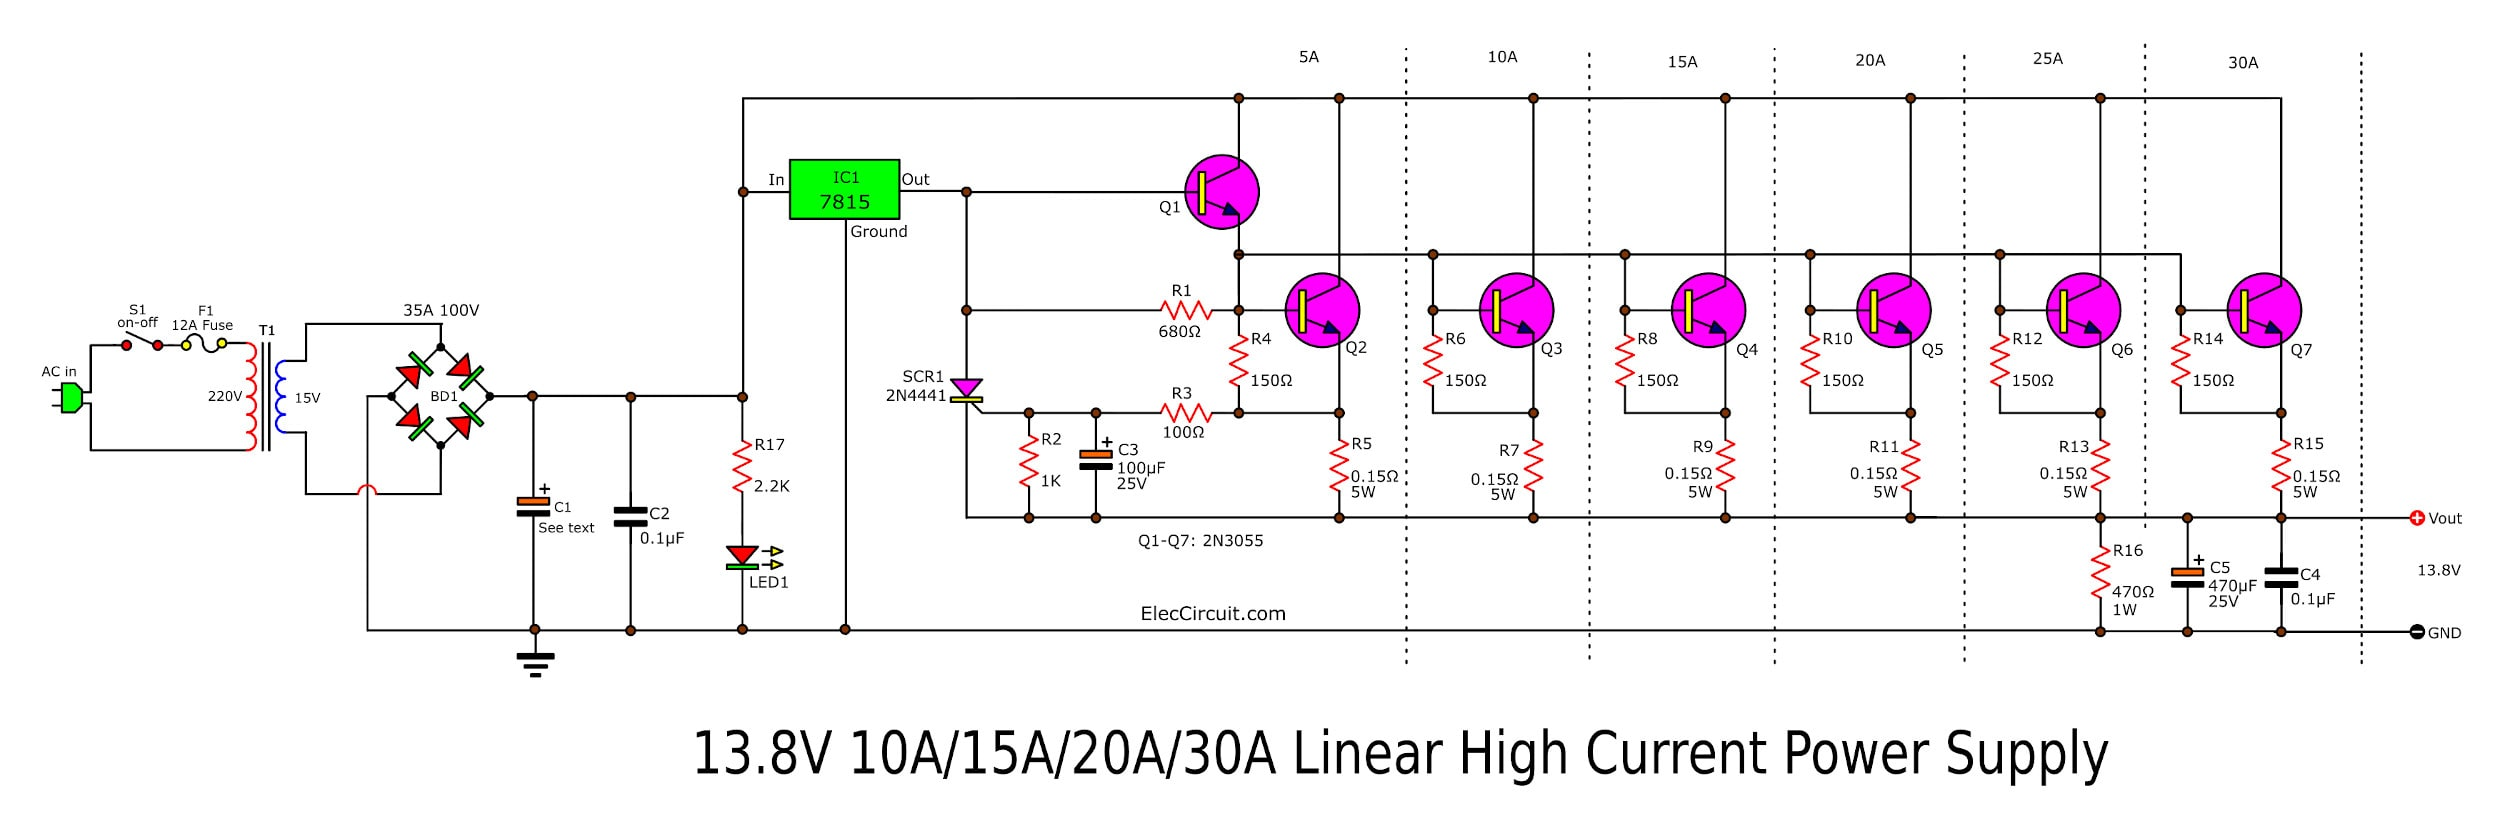 High Current 12v 30a25a20a15a Ham Radio Power Supply on car 12v to 50v dc converter circuit